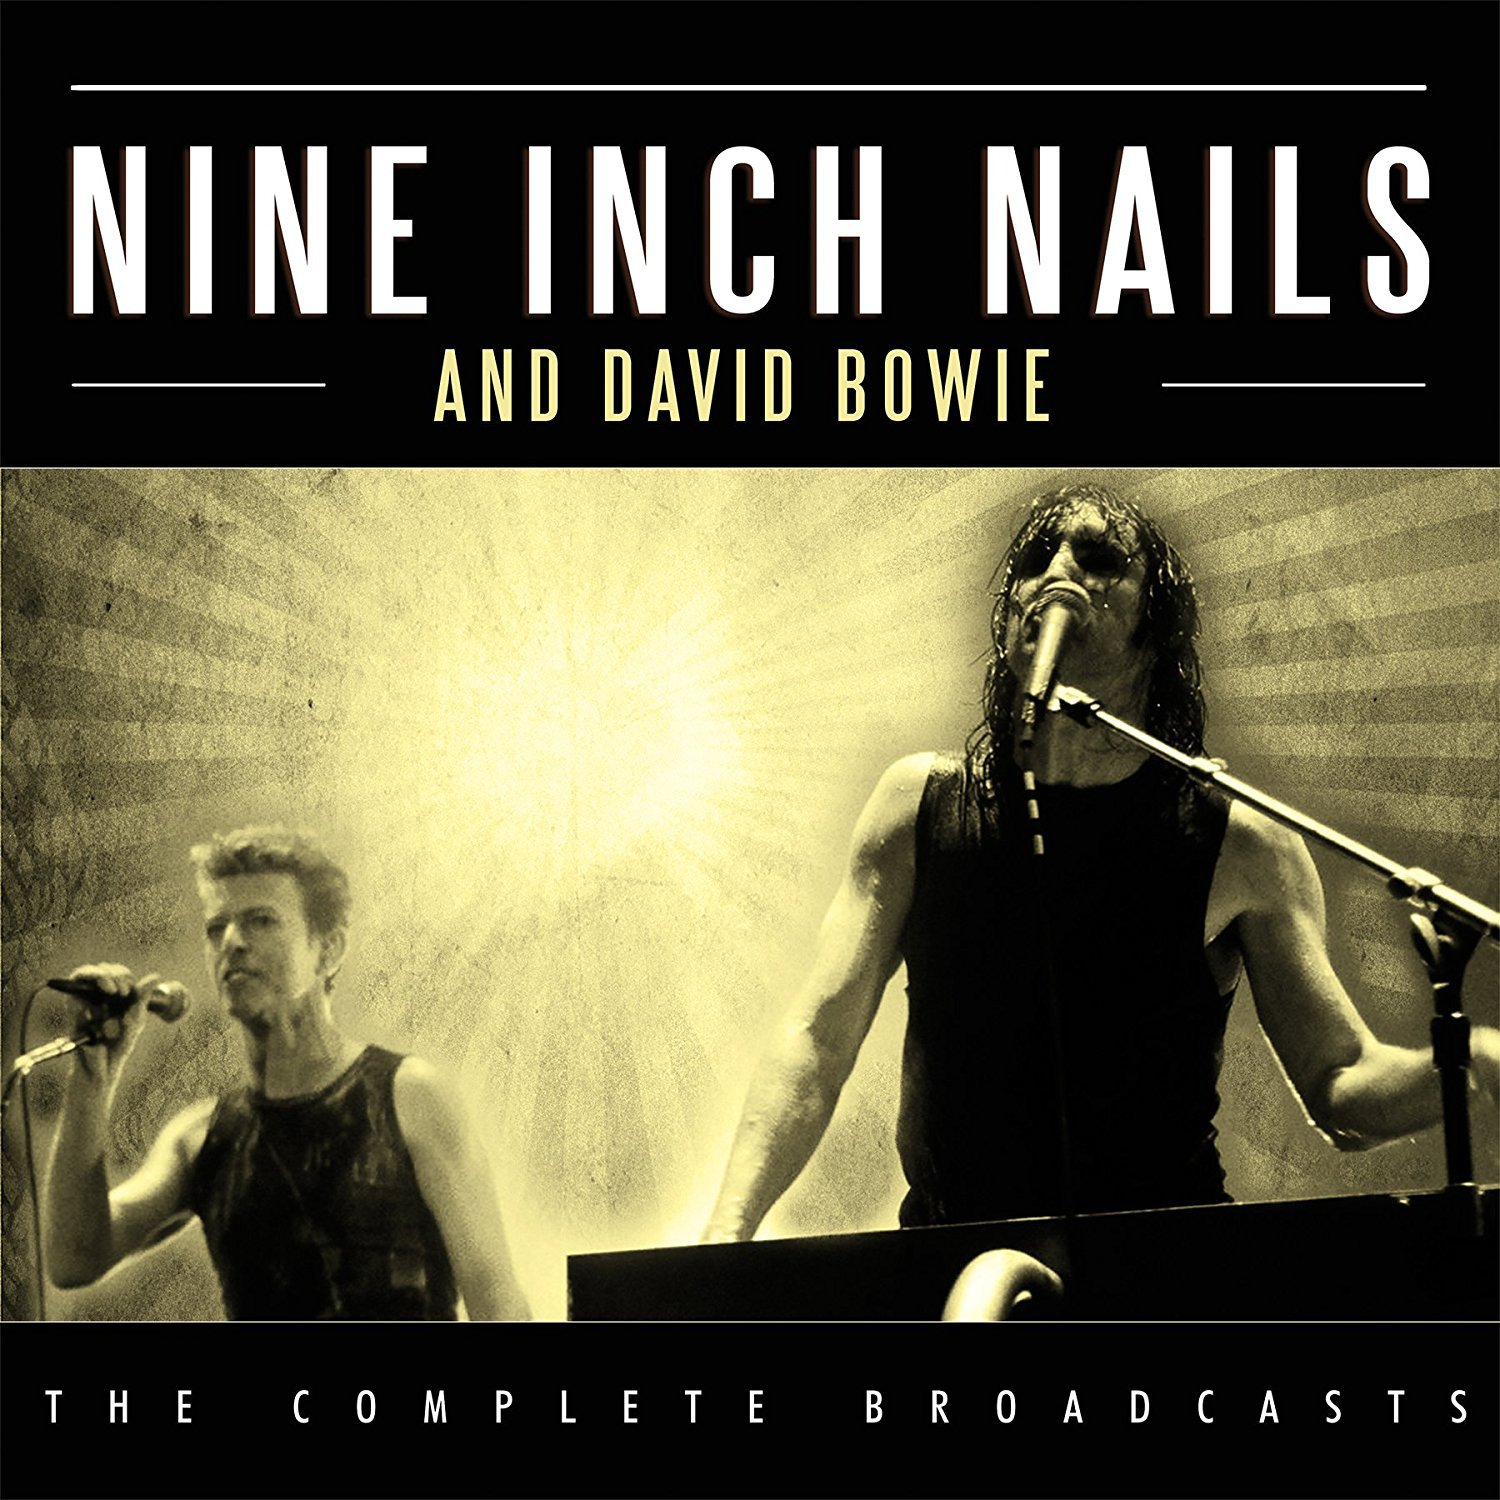 The Complete Broadcasts (3CD BOX SET): Amazon.co.uk: Music